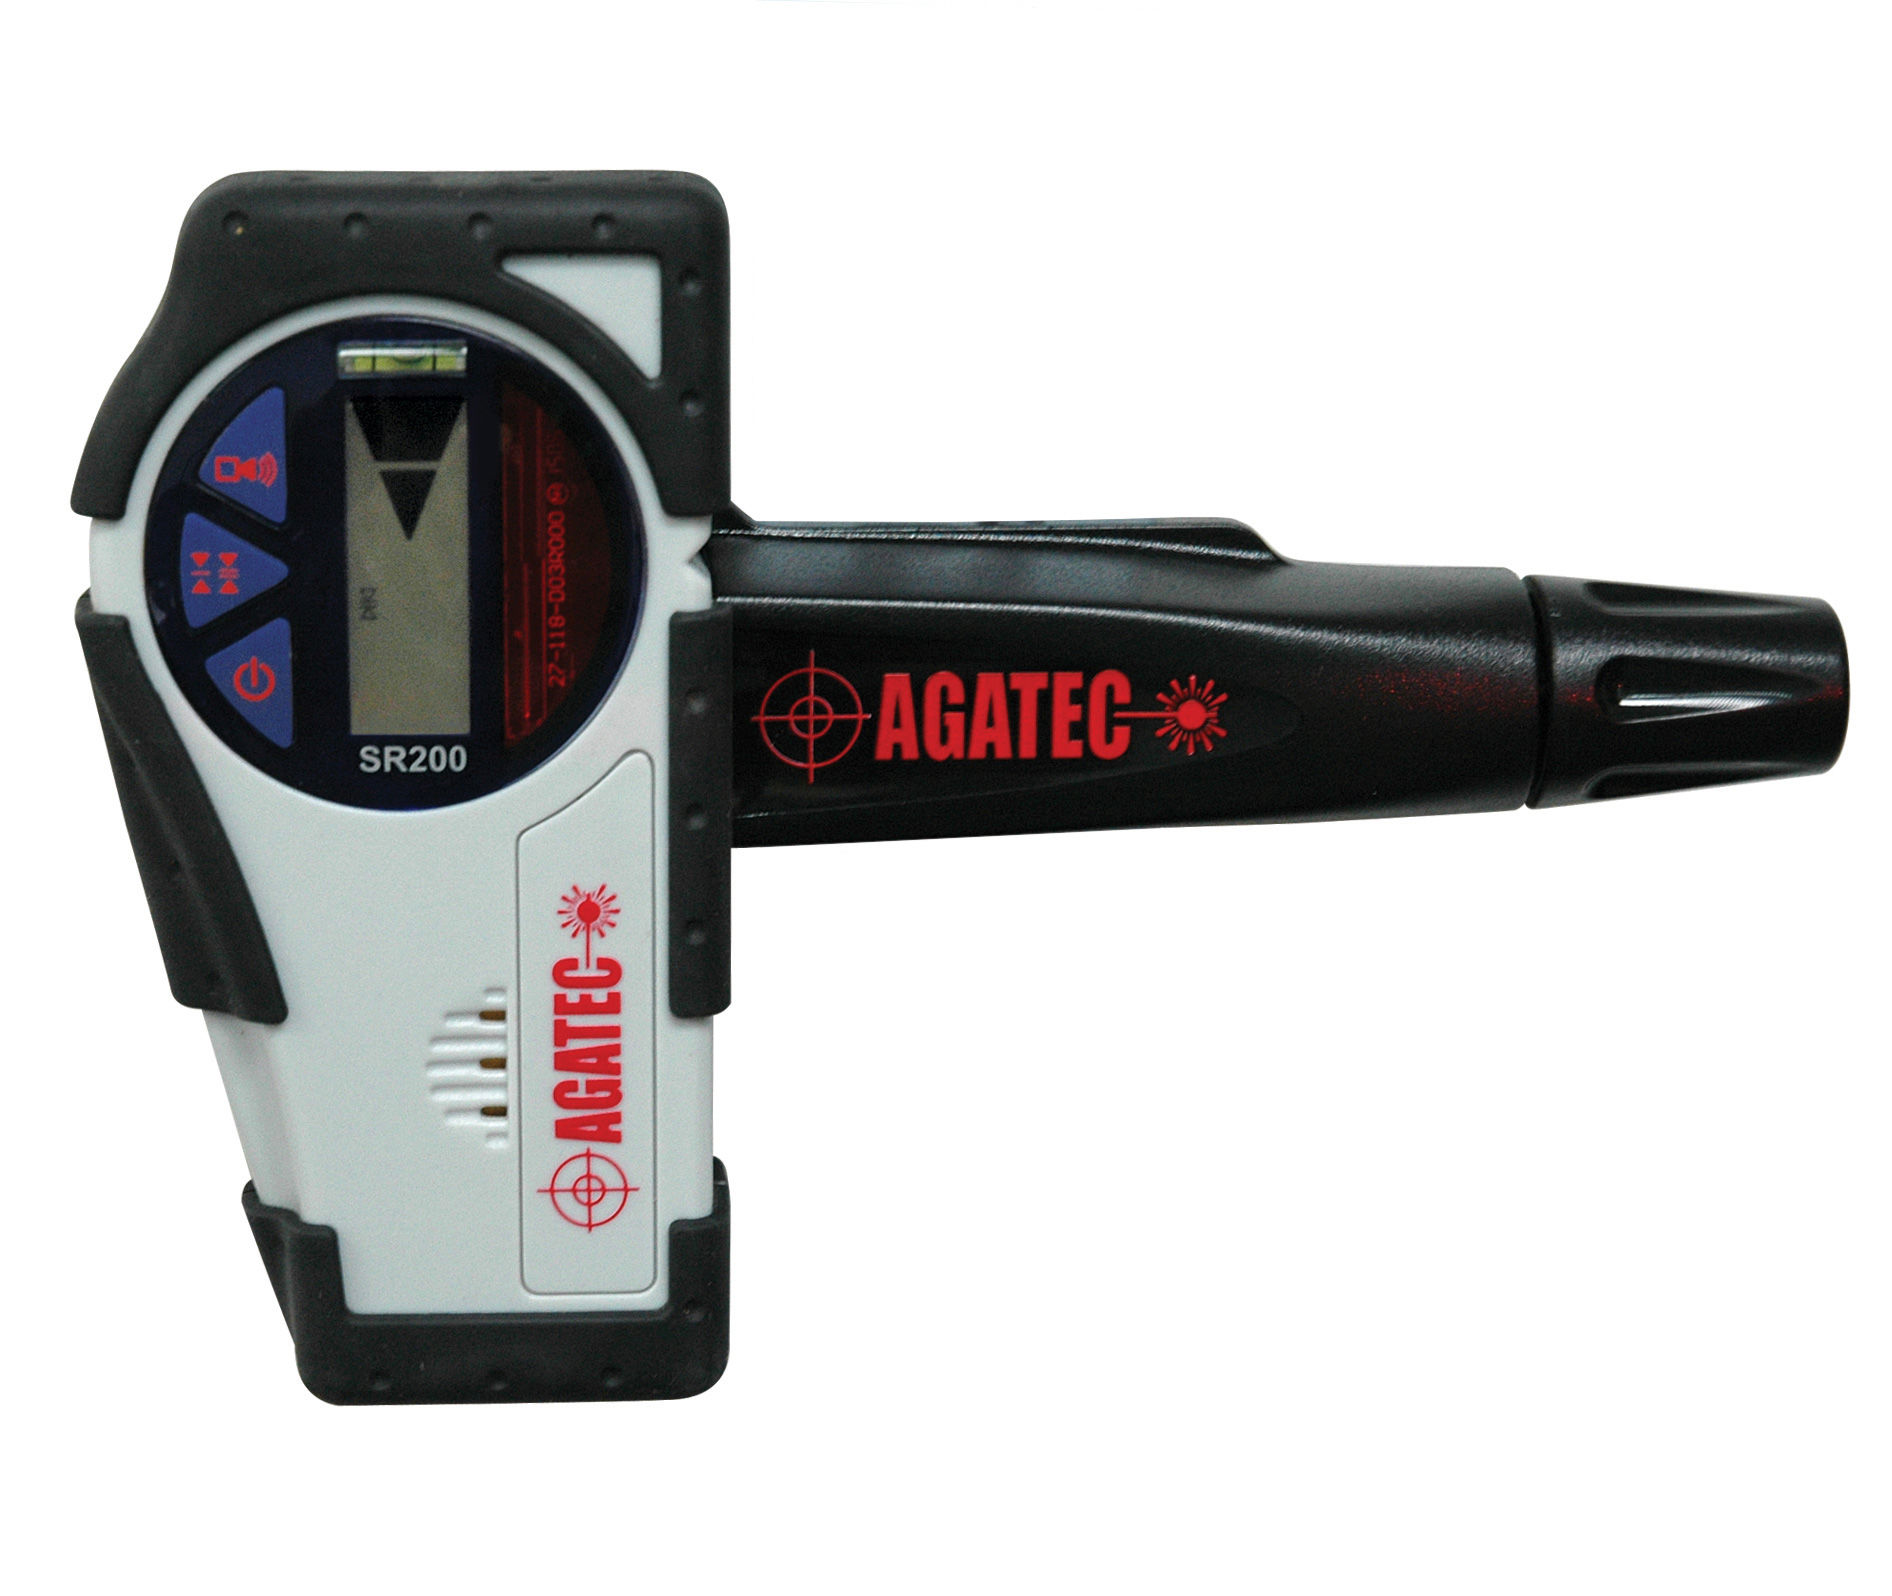 Agatec 1 08931 NA Rotary Laser Level Detector with Clamp SR200